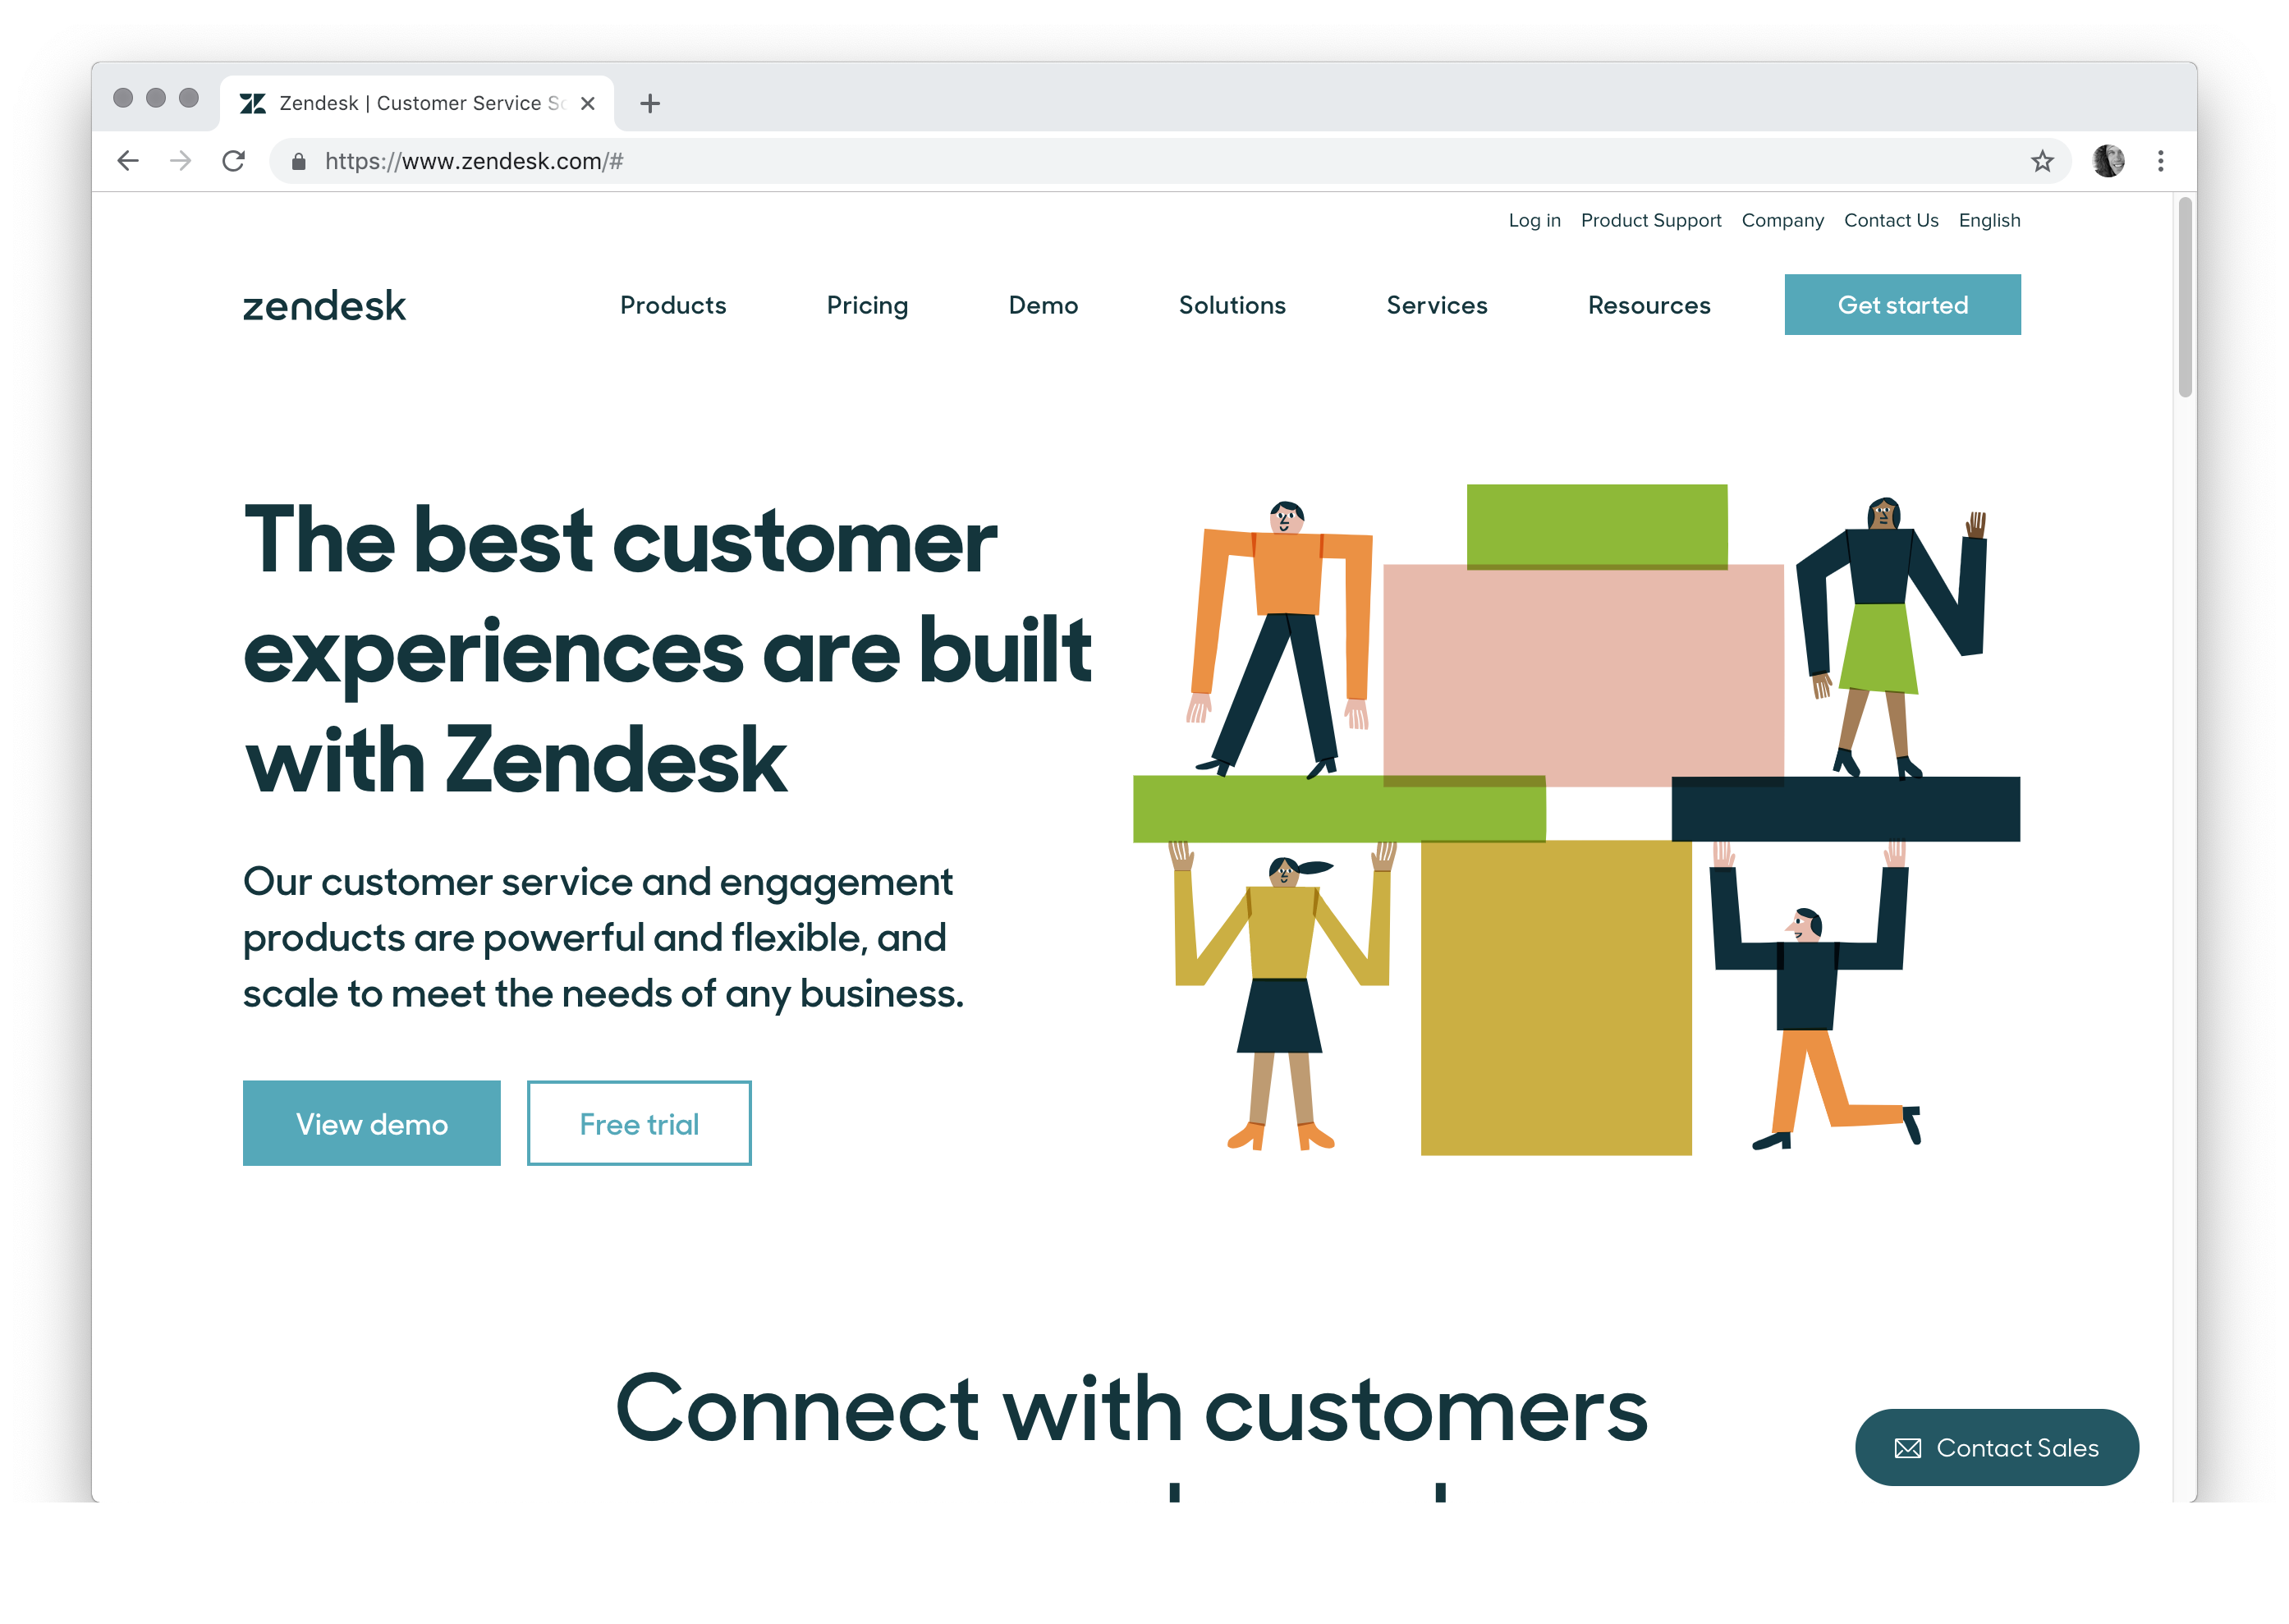 The best customer experiences are built with Zendesk Our customer service and engagement products are powerful and flexible, and scale to meet the needs of any business.